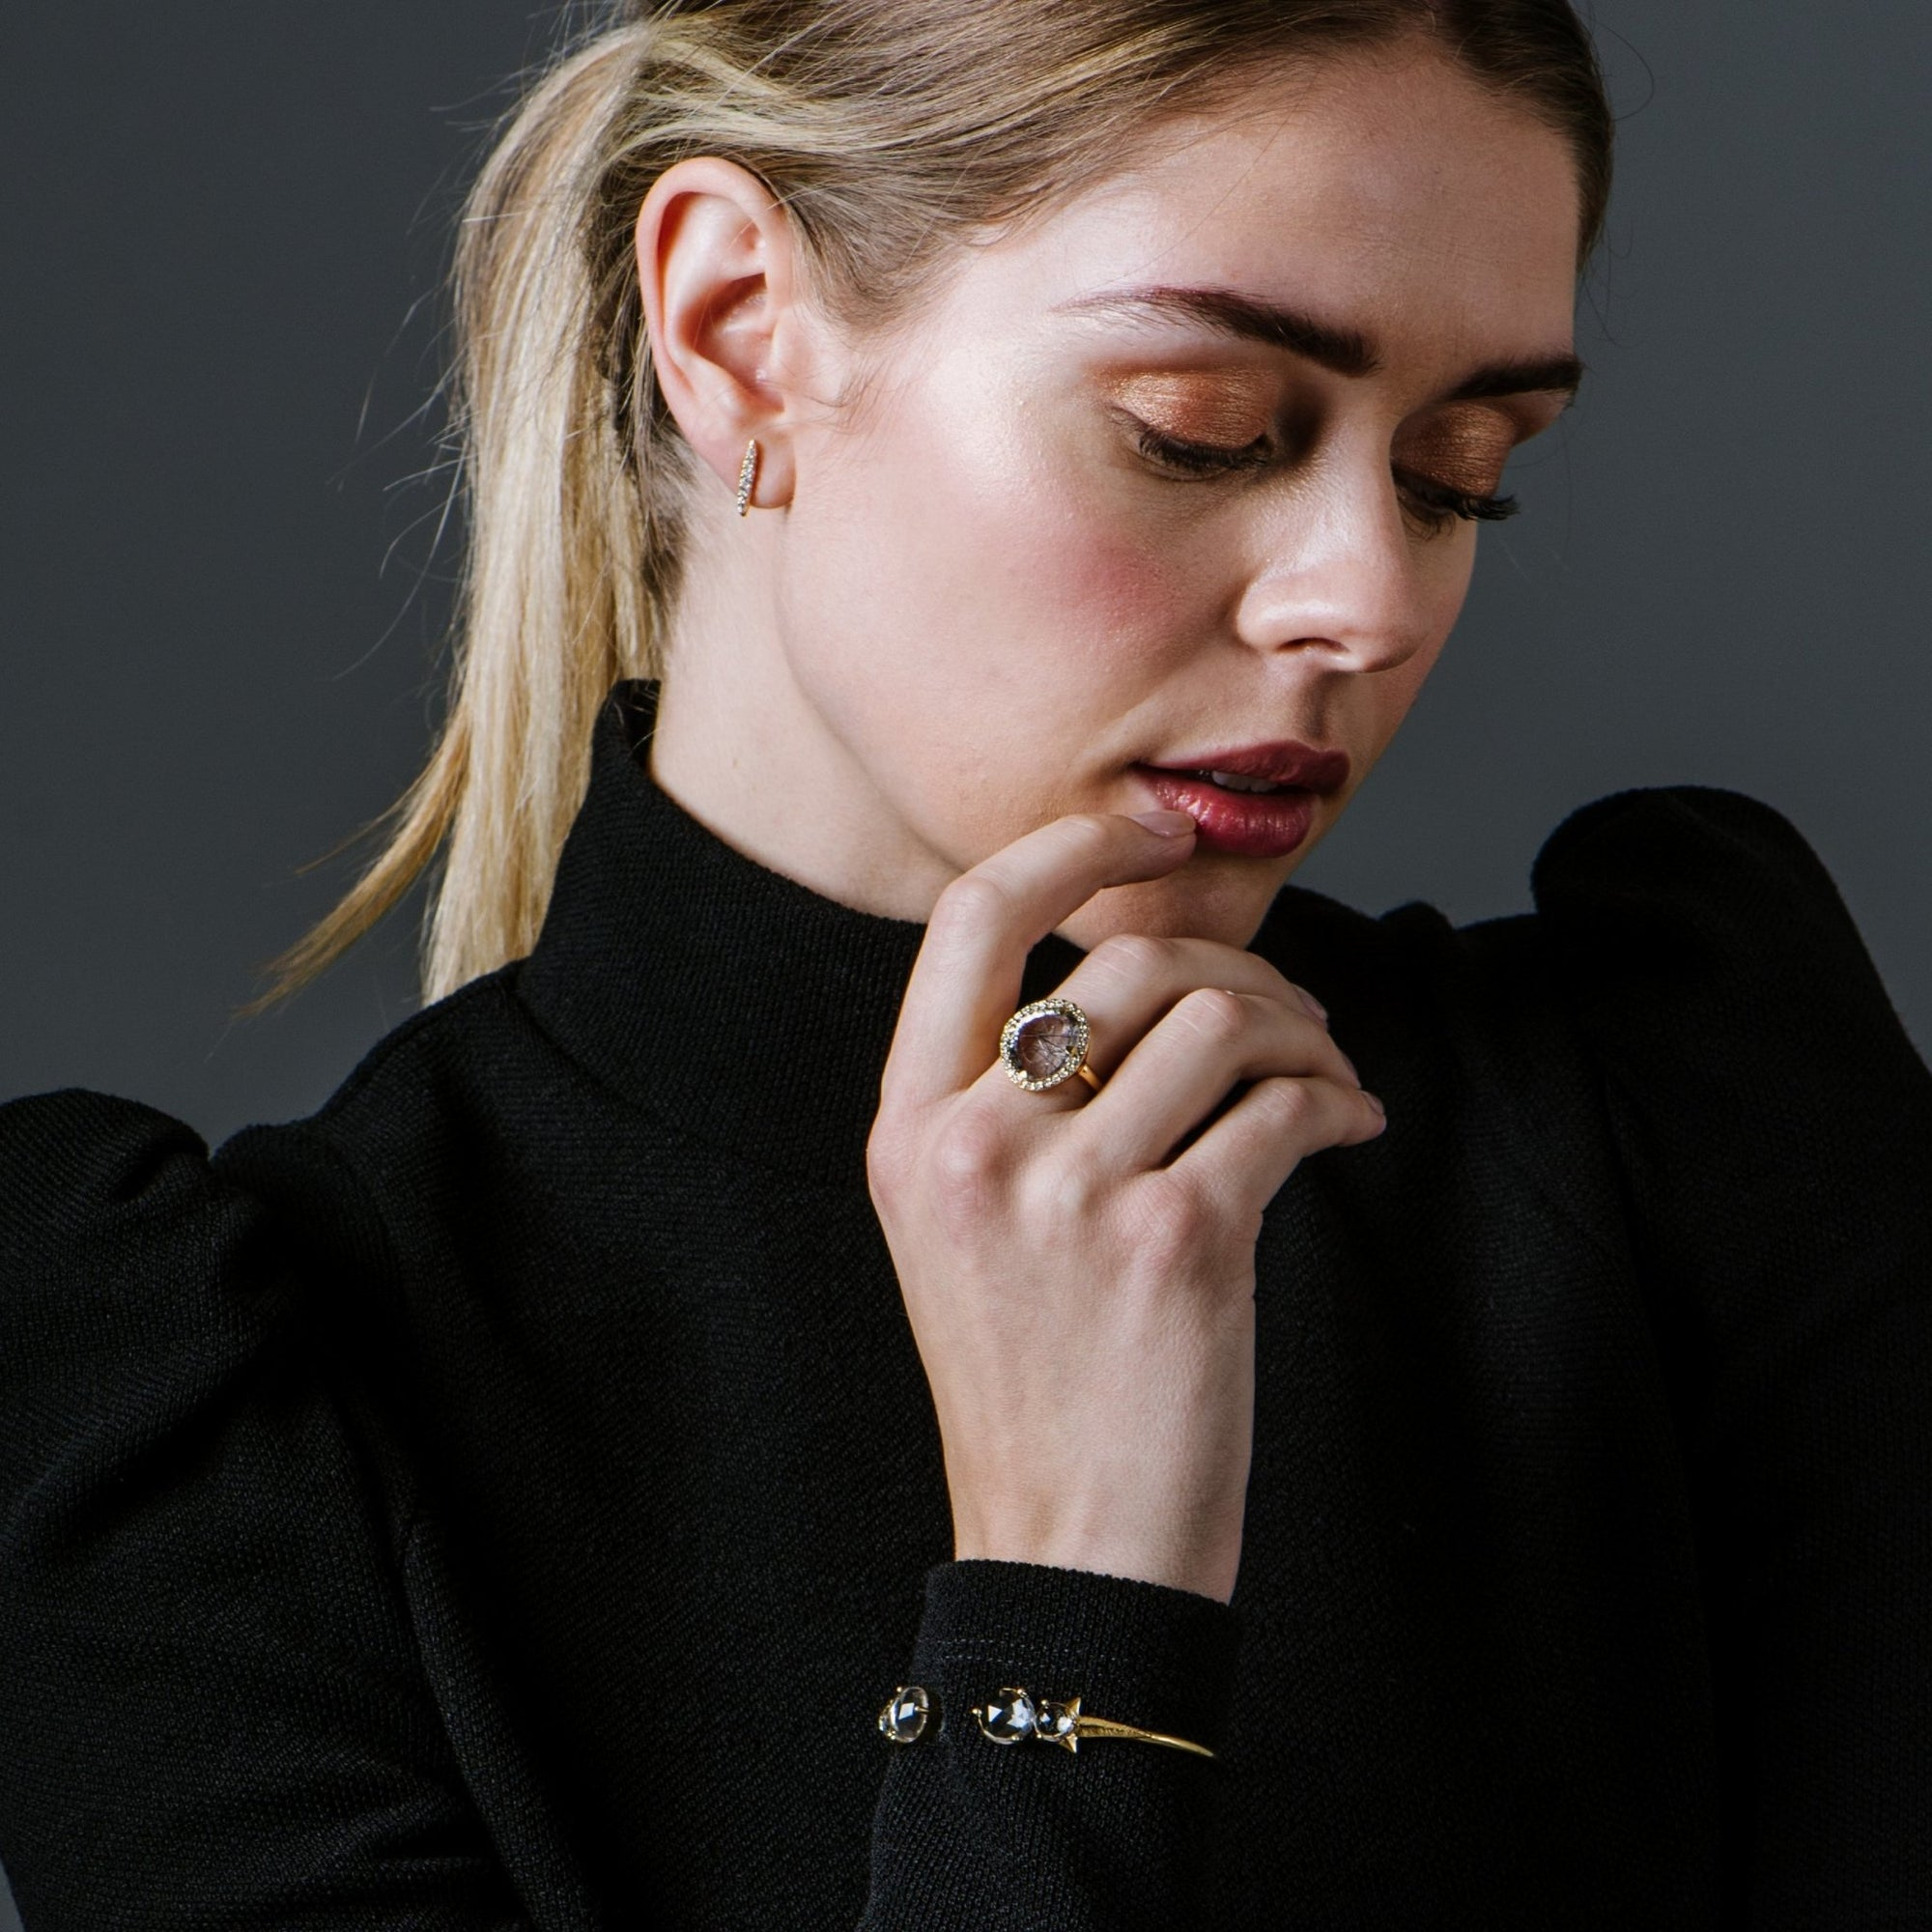 DREAM LUNA COCKTAIL RING - BLACK RUTILE QUARTZ, CUBIC ZIRCONIA & GOLD - SO PRETTY CARA COTTER